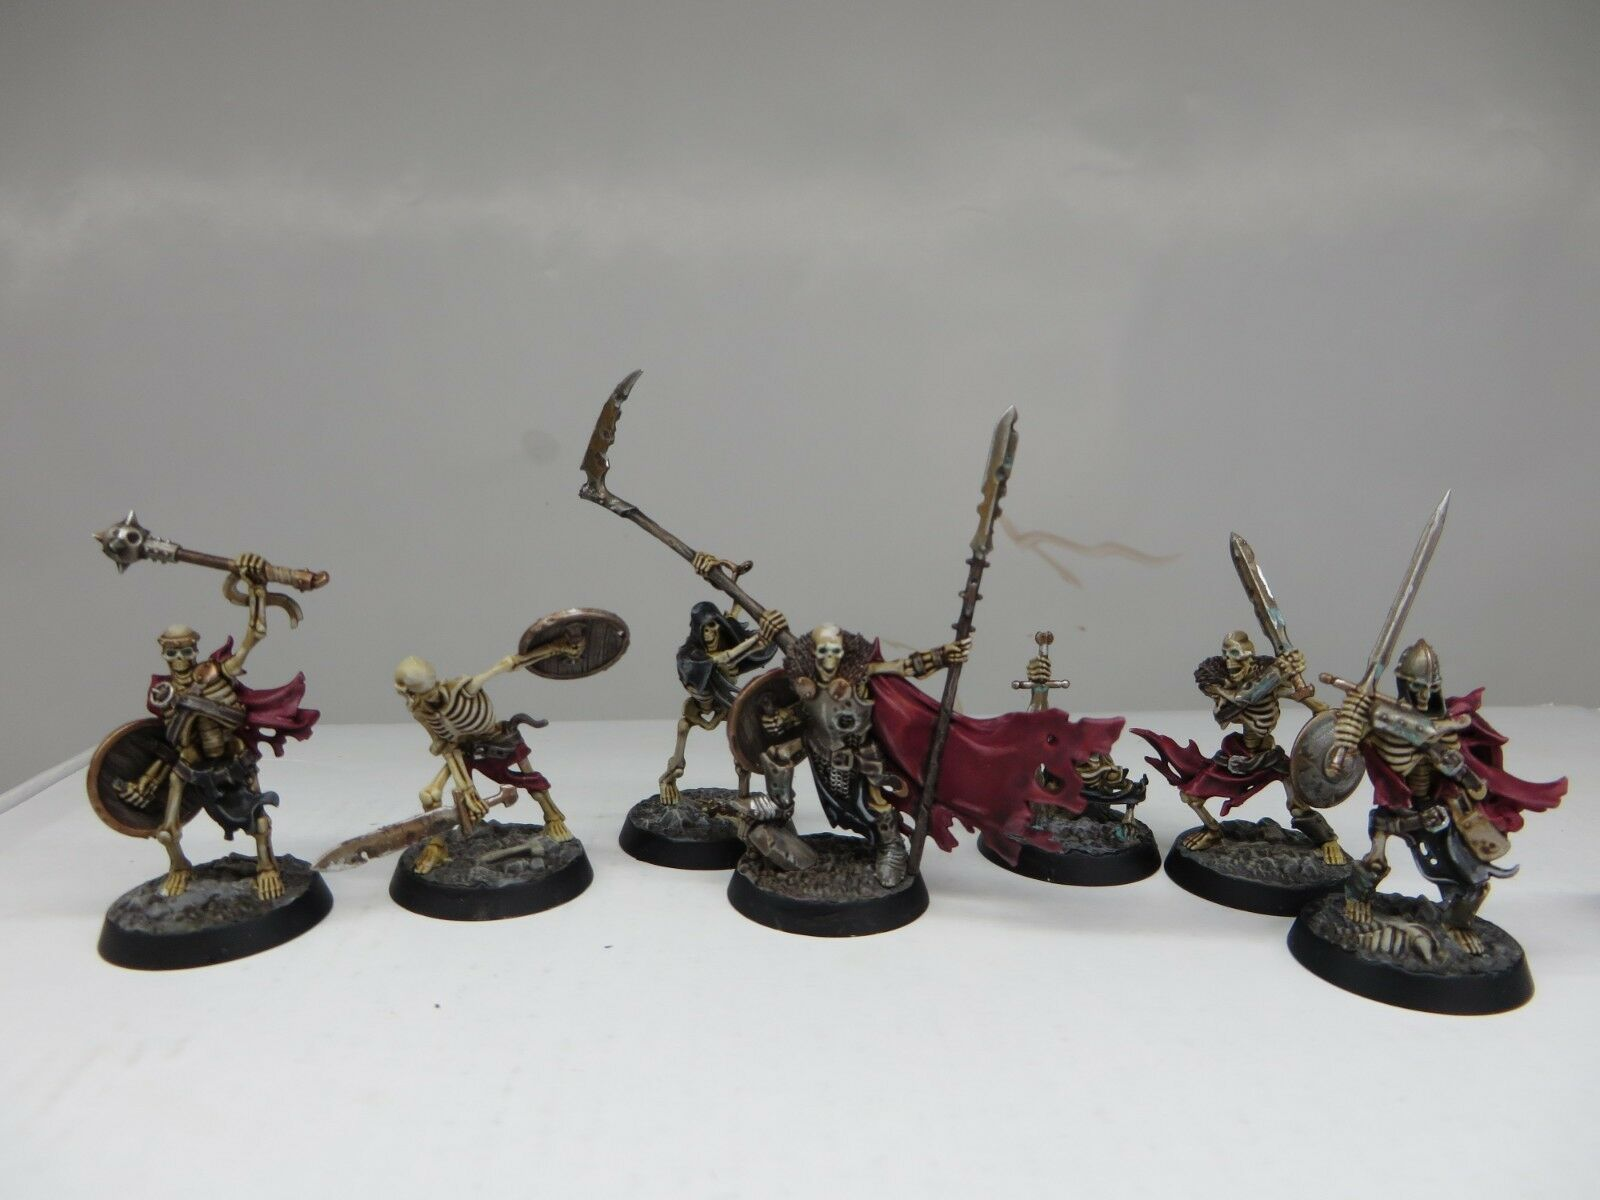 Warhammer Shadespire Sepulchlar Guard PAINTED Games Workshop Death Skeletons